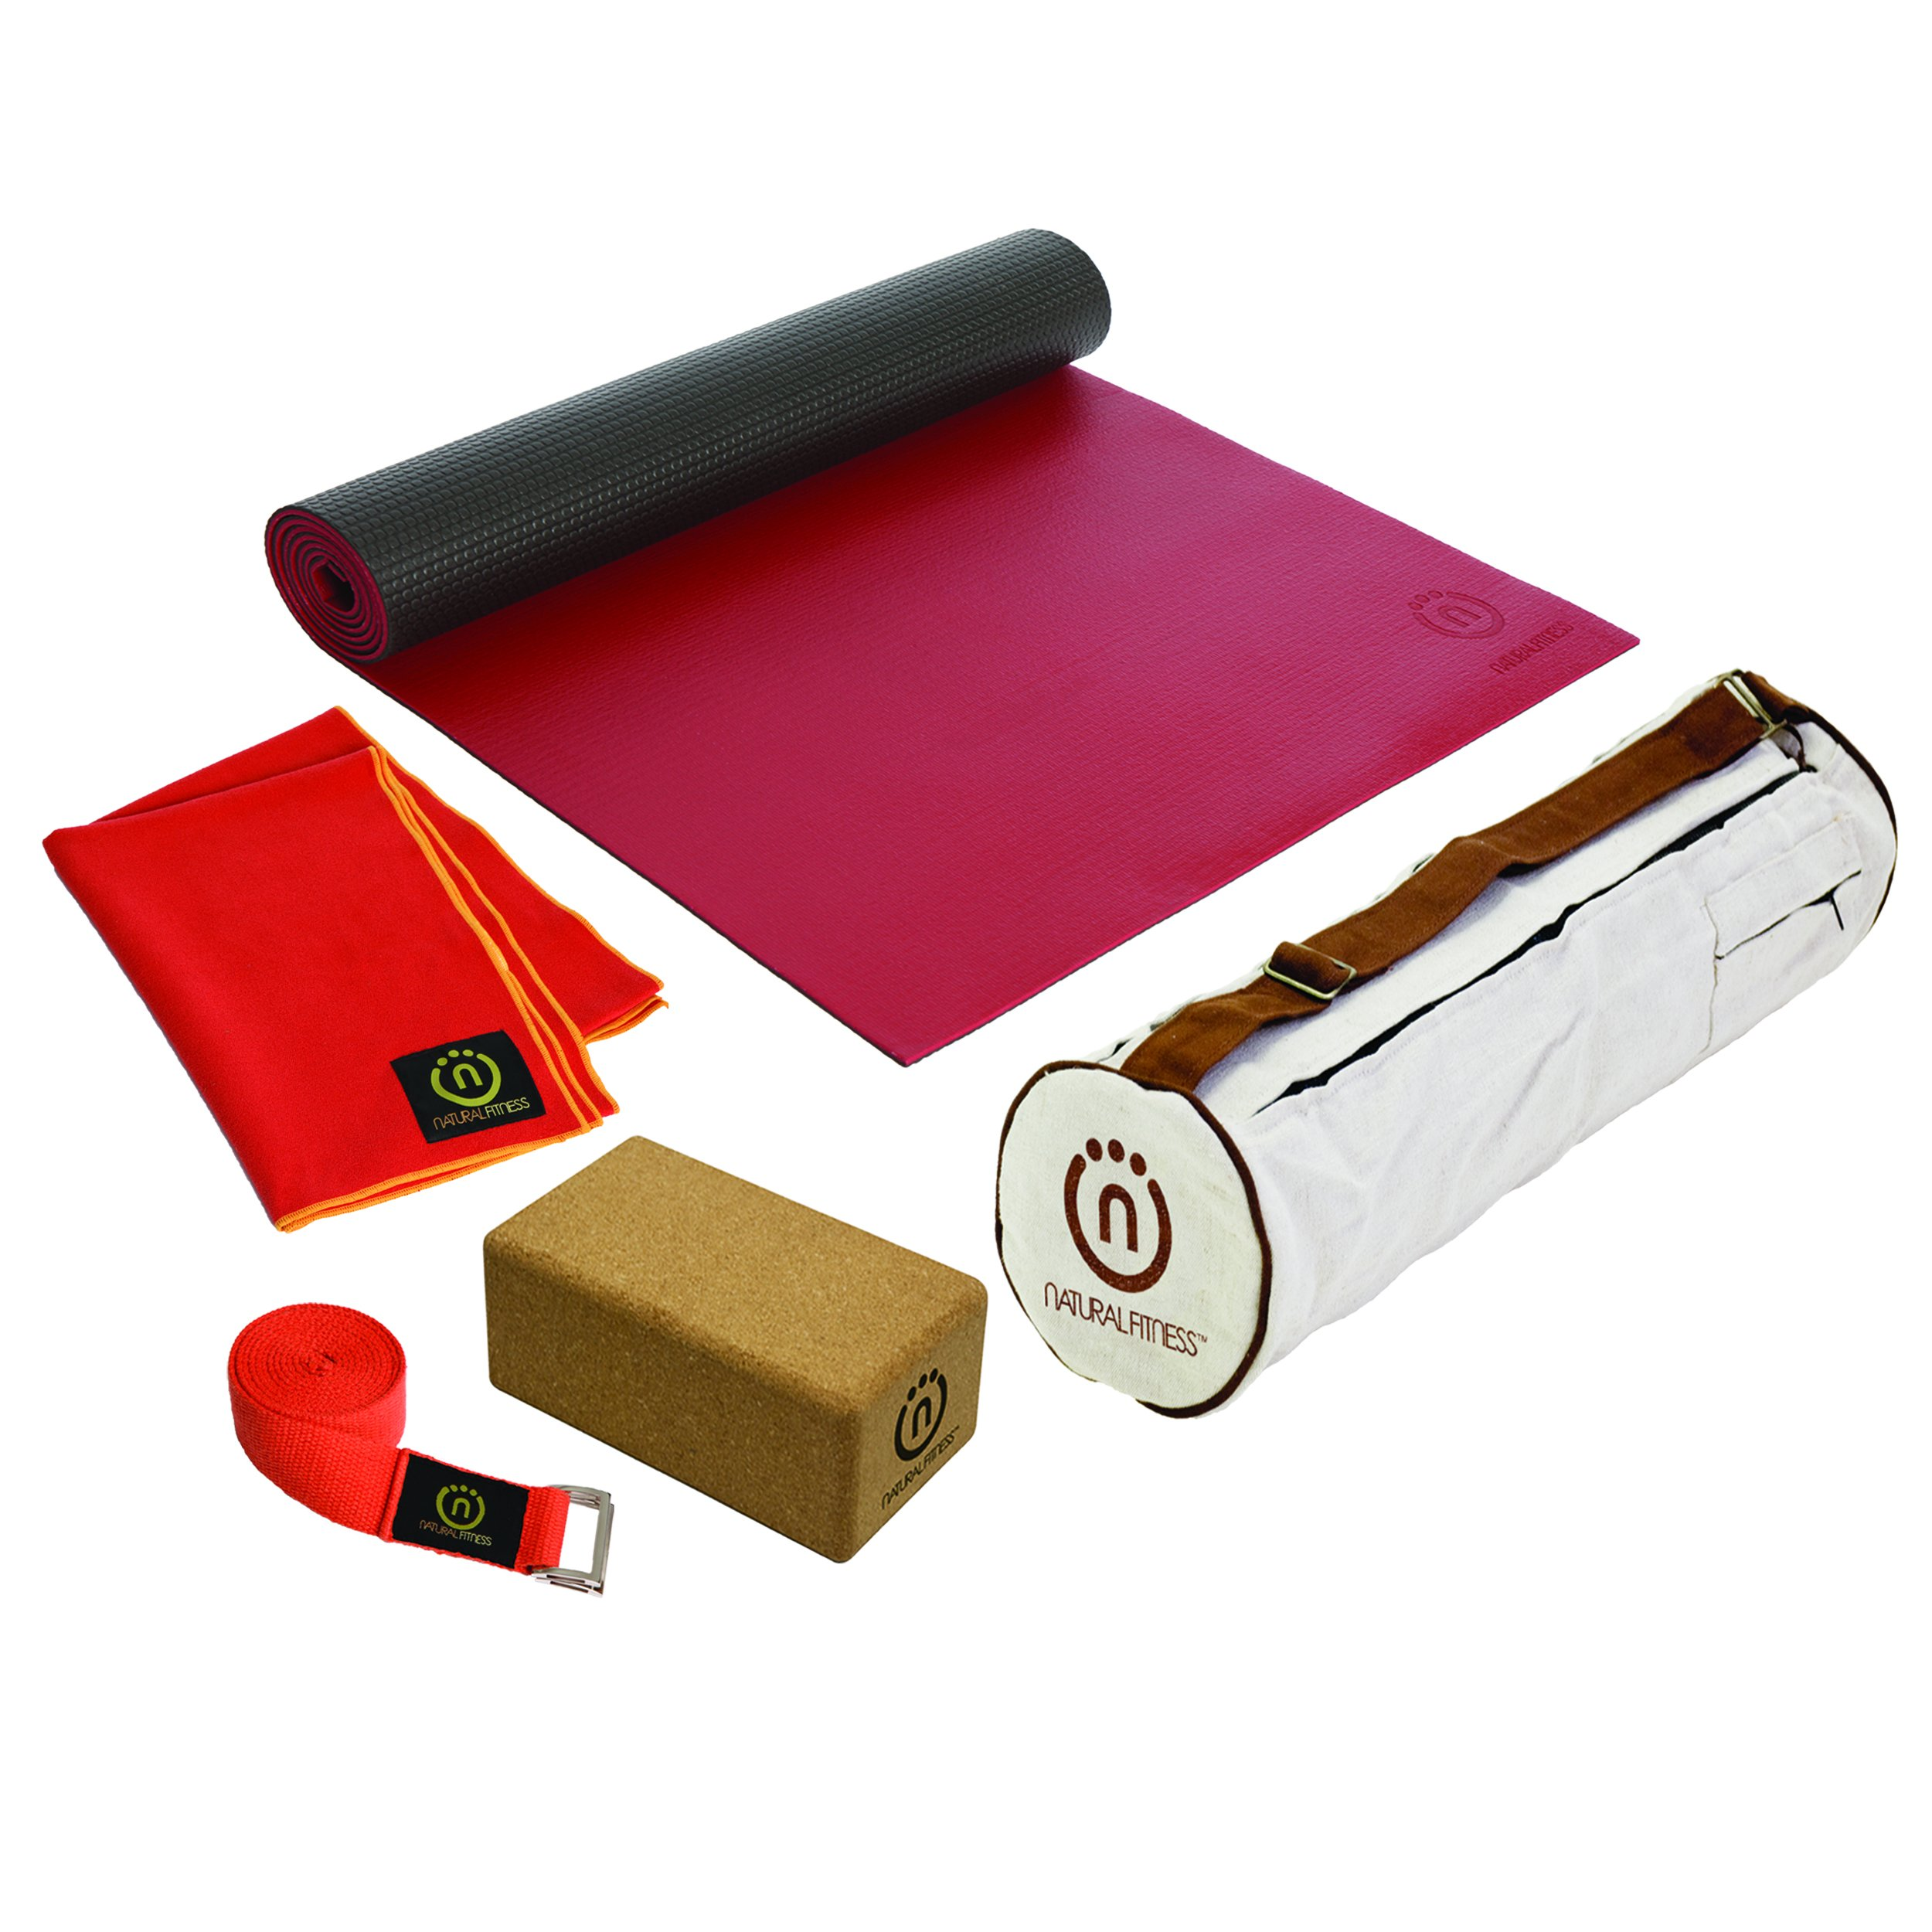 Hot Yoga Kit (Warrior Mat, Towel, Cork Block, Hemp Strap) One Size by Natural Fitness (Image #1)